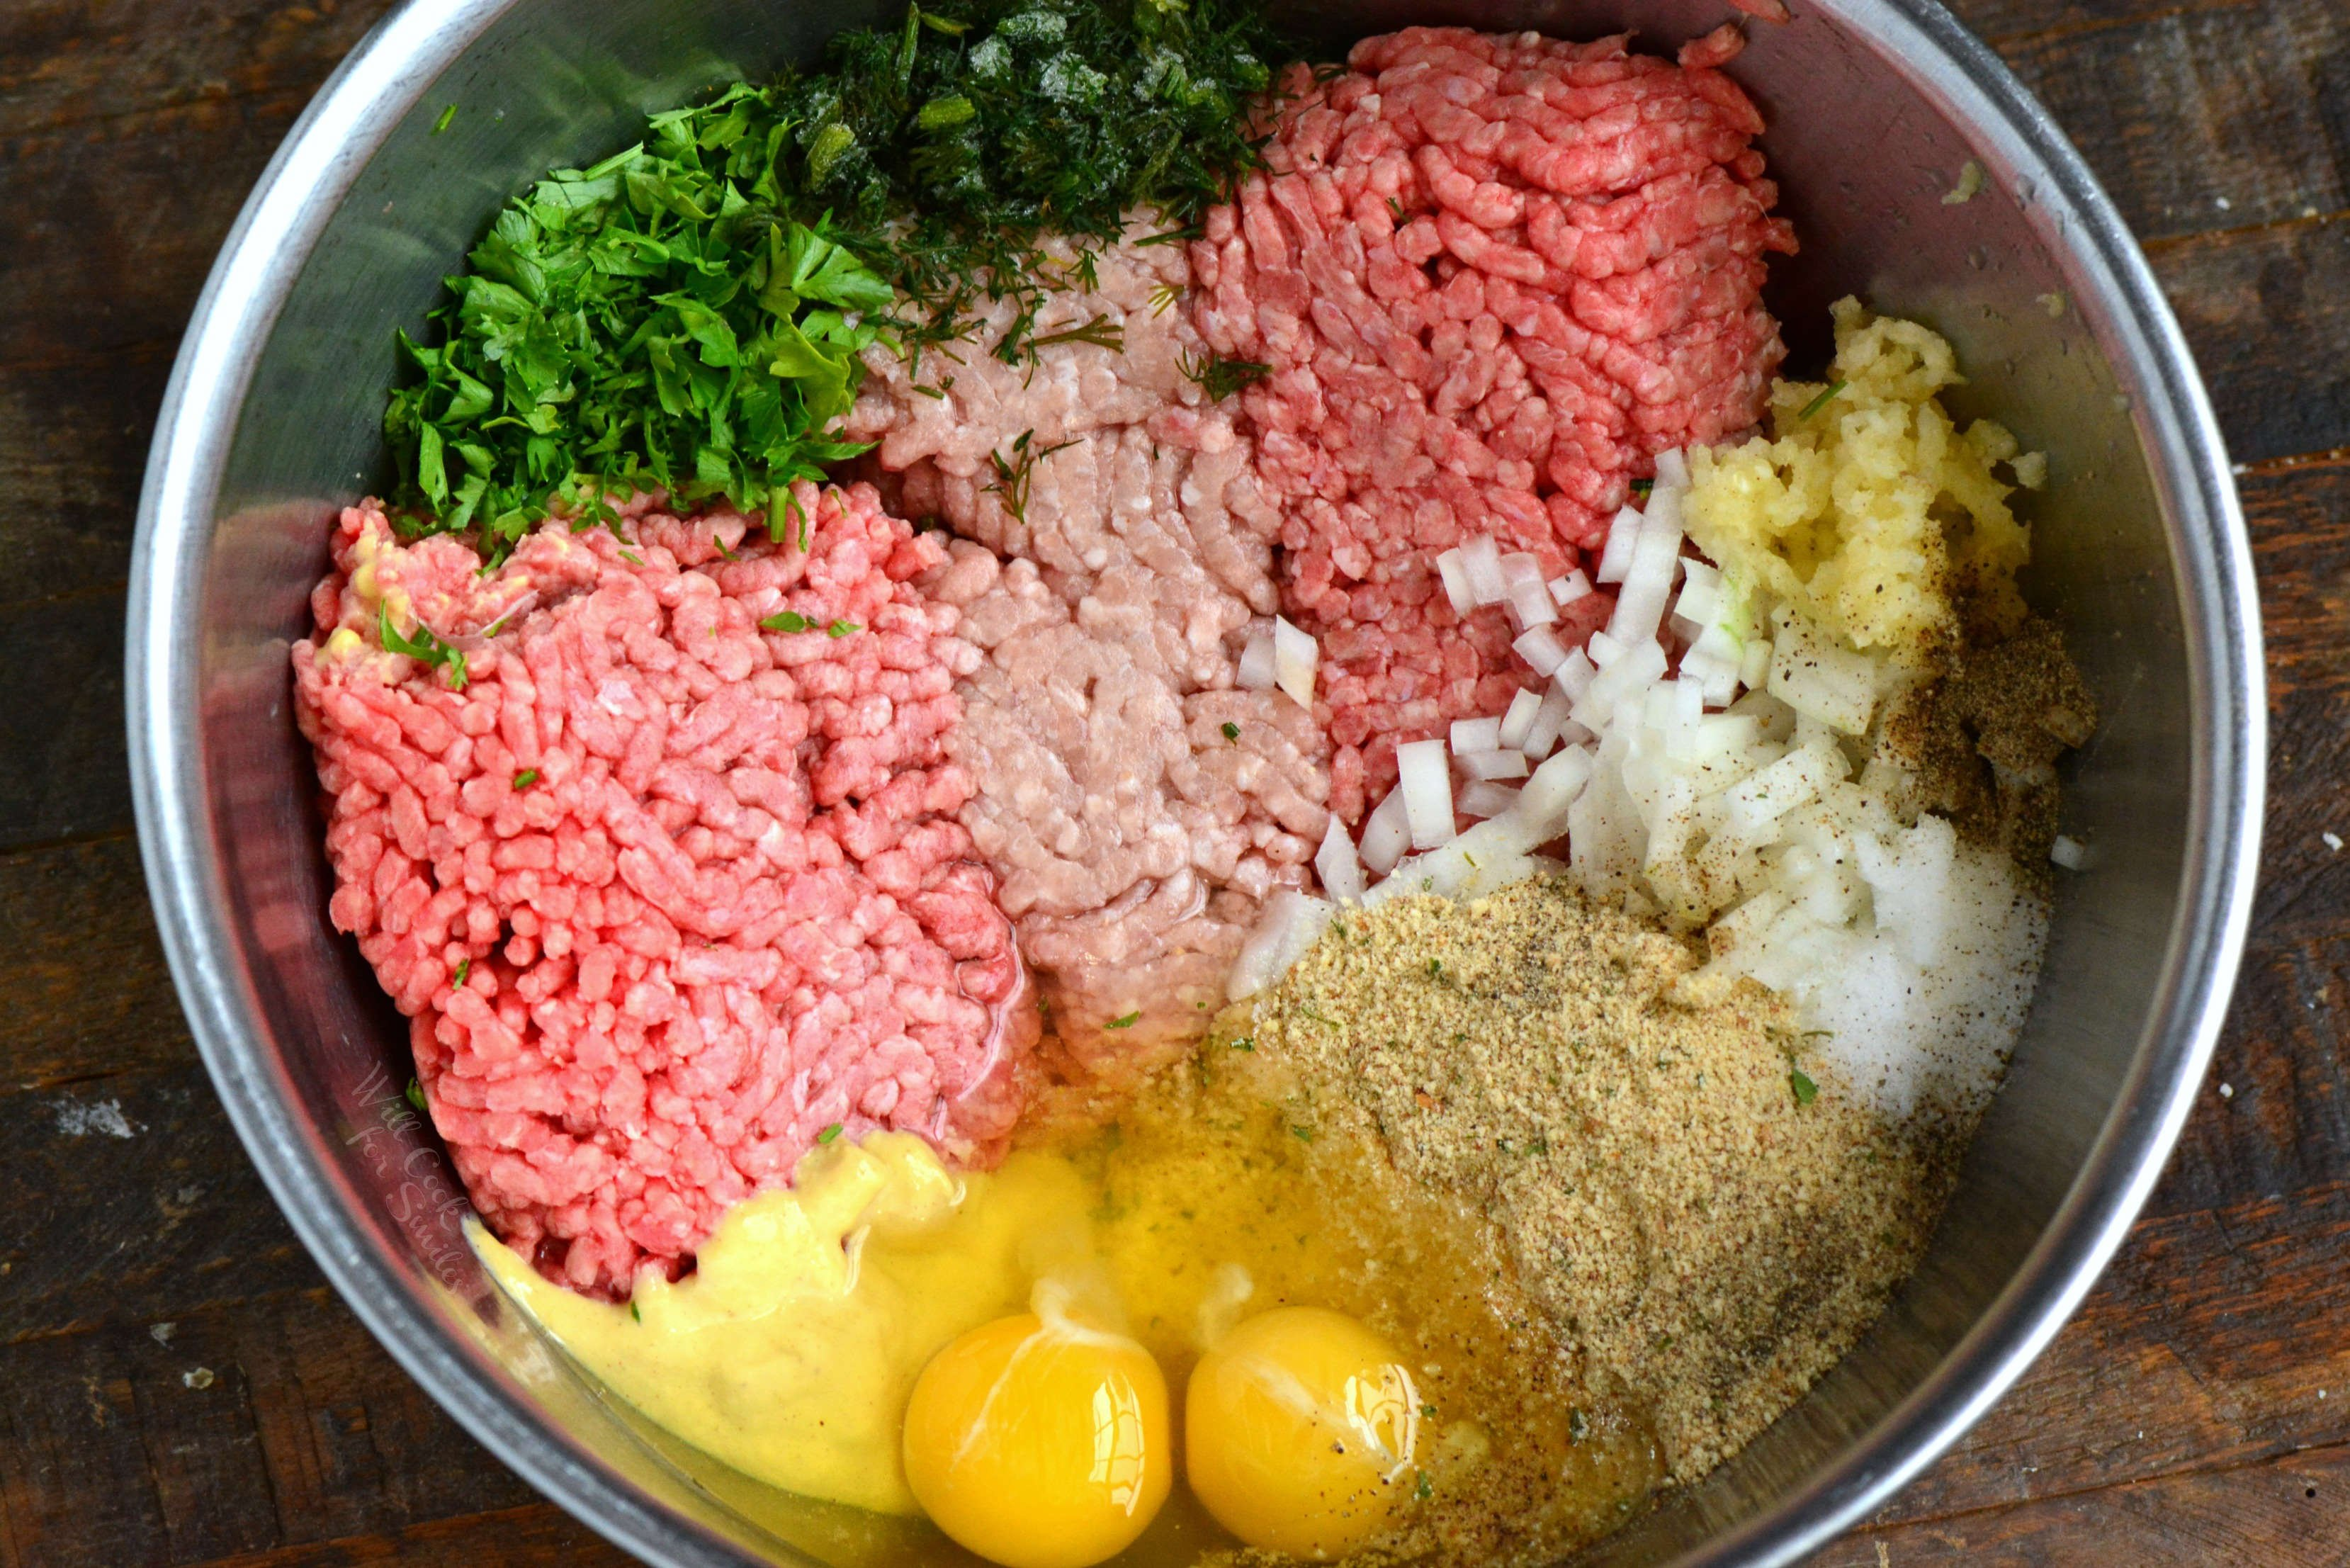 ingredients for the meatloaf in a metal bowl